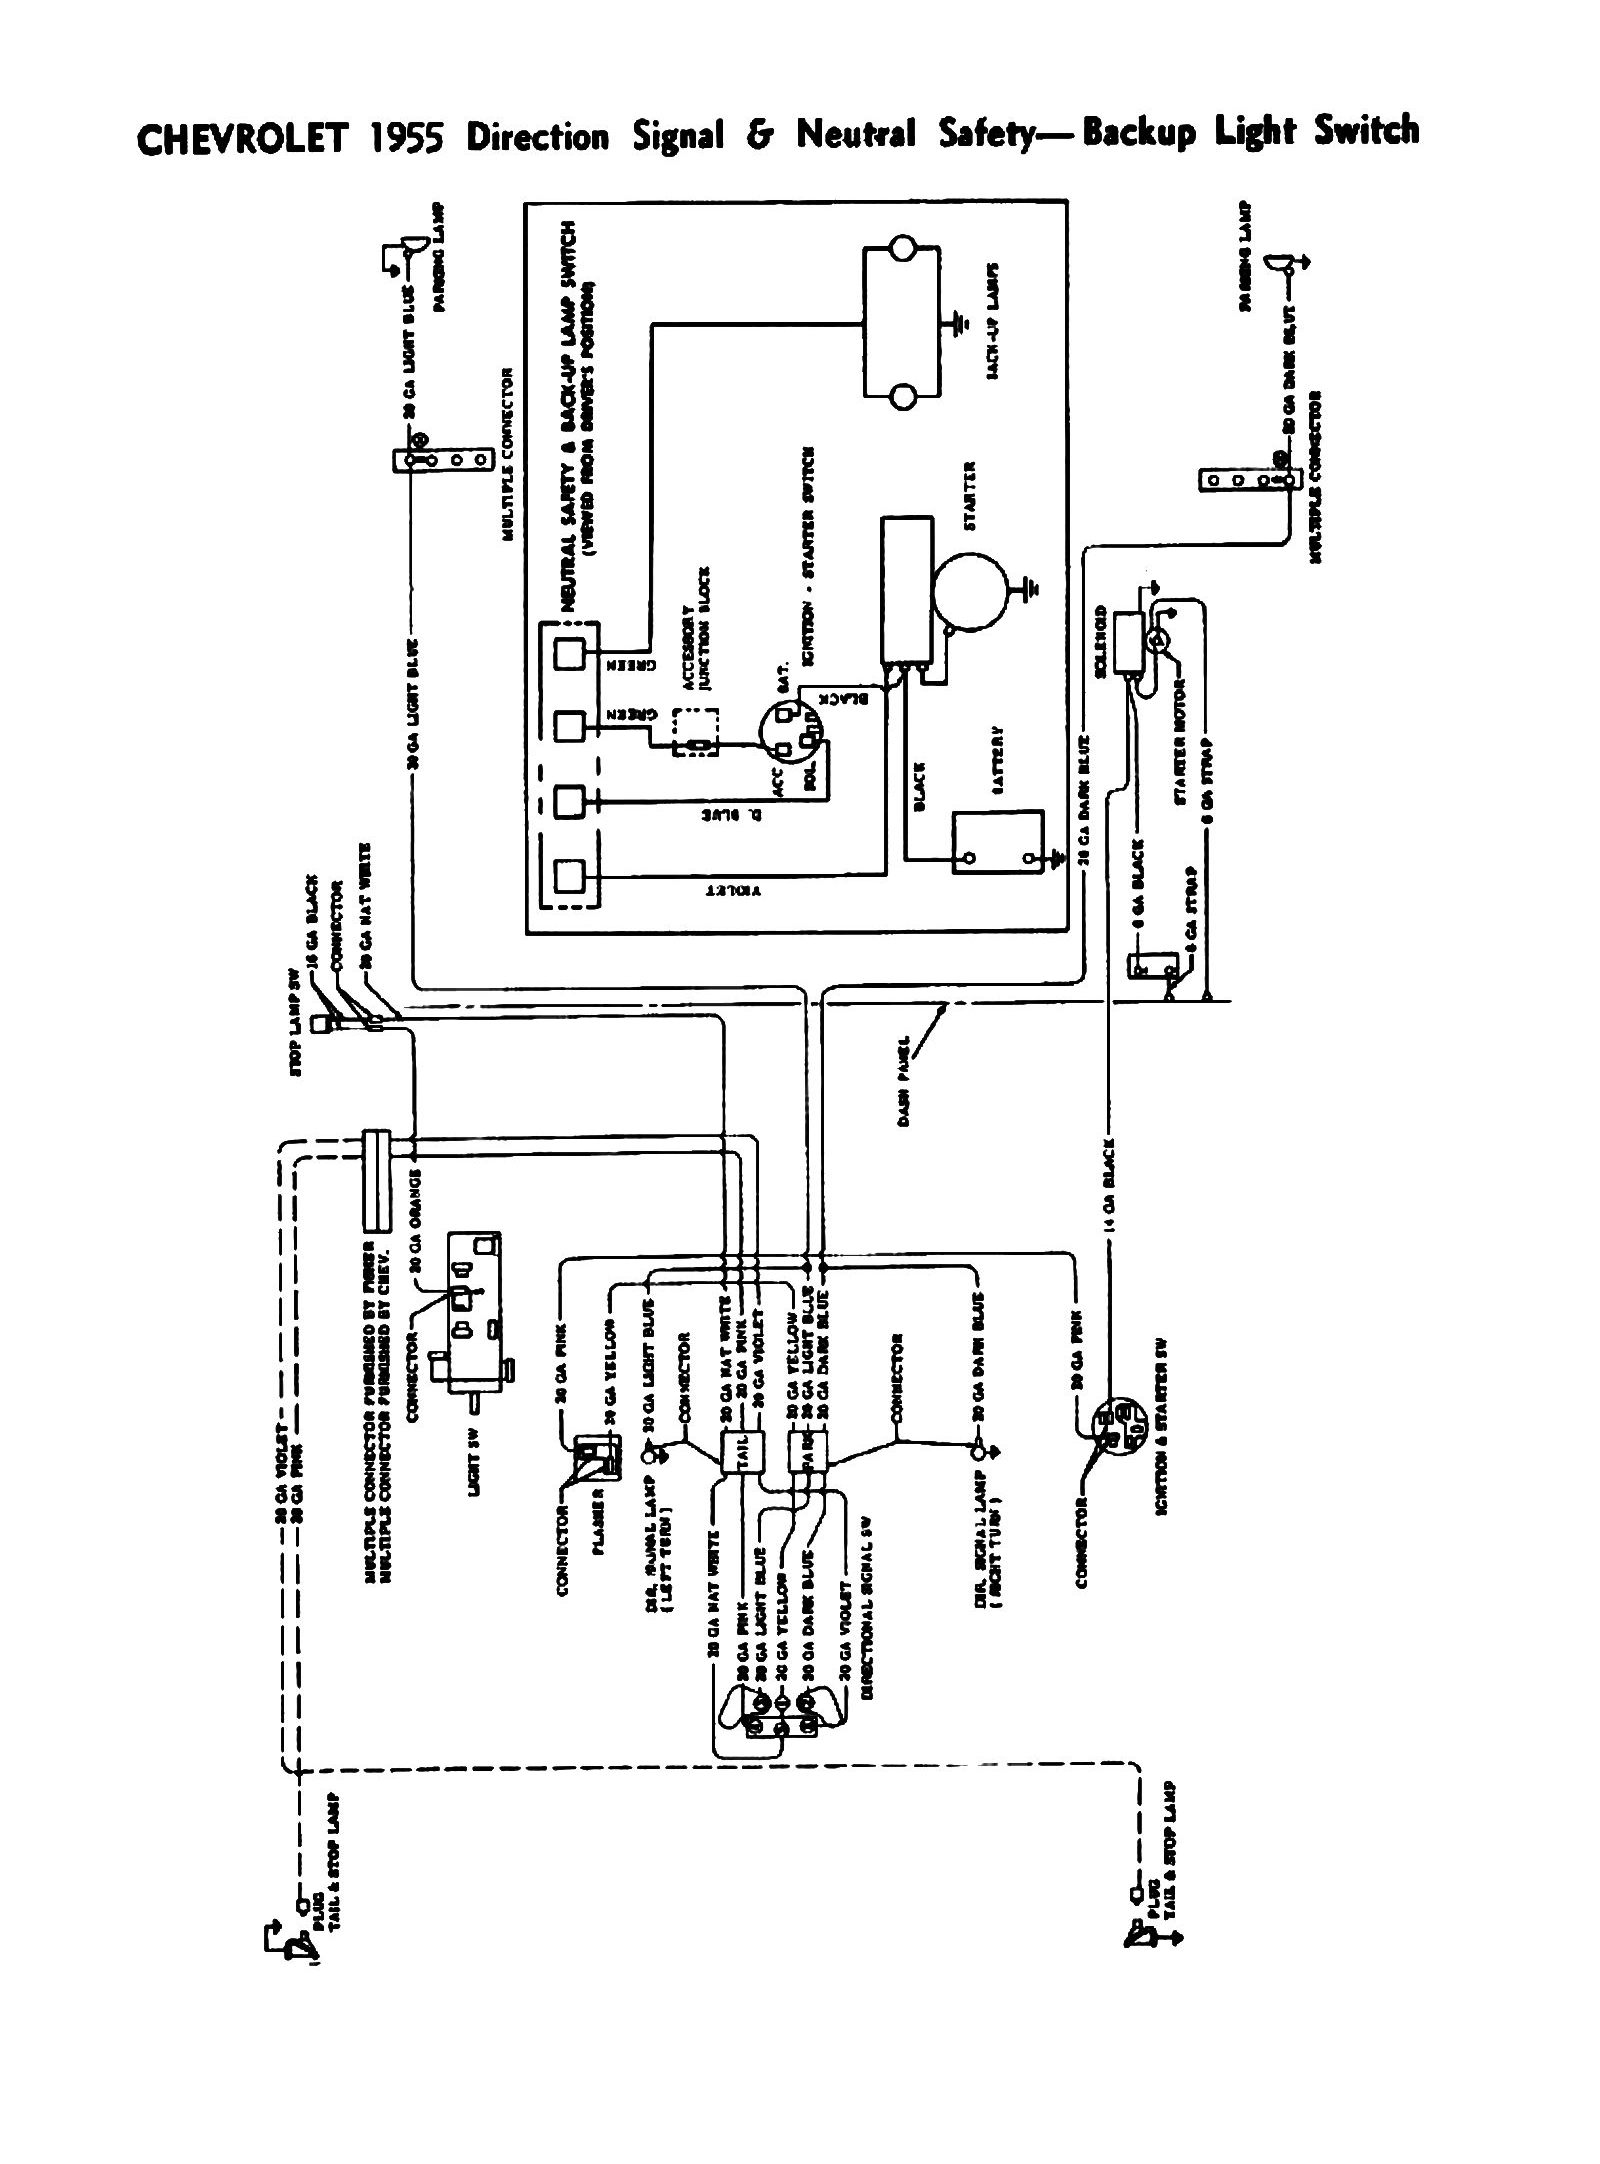 1956 chevy headlight switch wiring diagram 1 ferienwohnung koblenzchevy light switch wiring wiring diagram rh 067 siezendevisser nl gm headlight switch wiring diagram 55